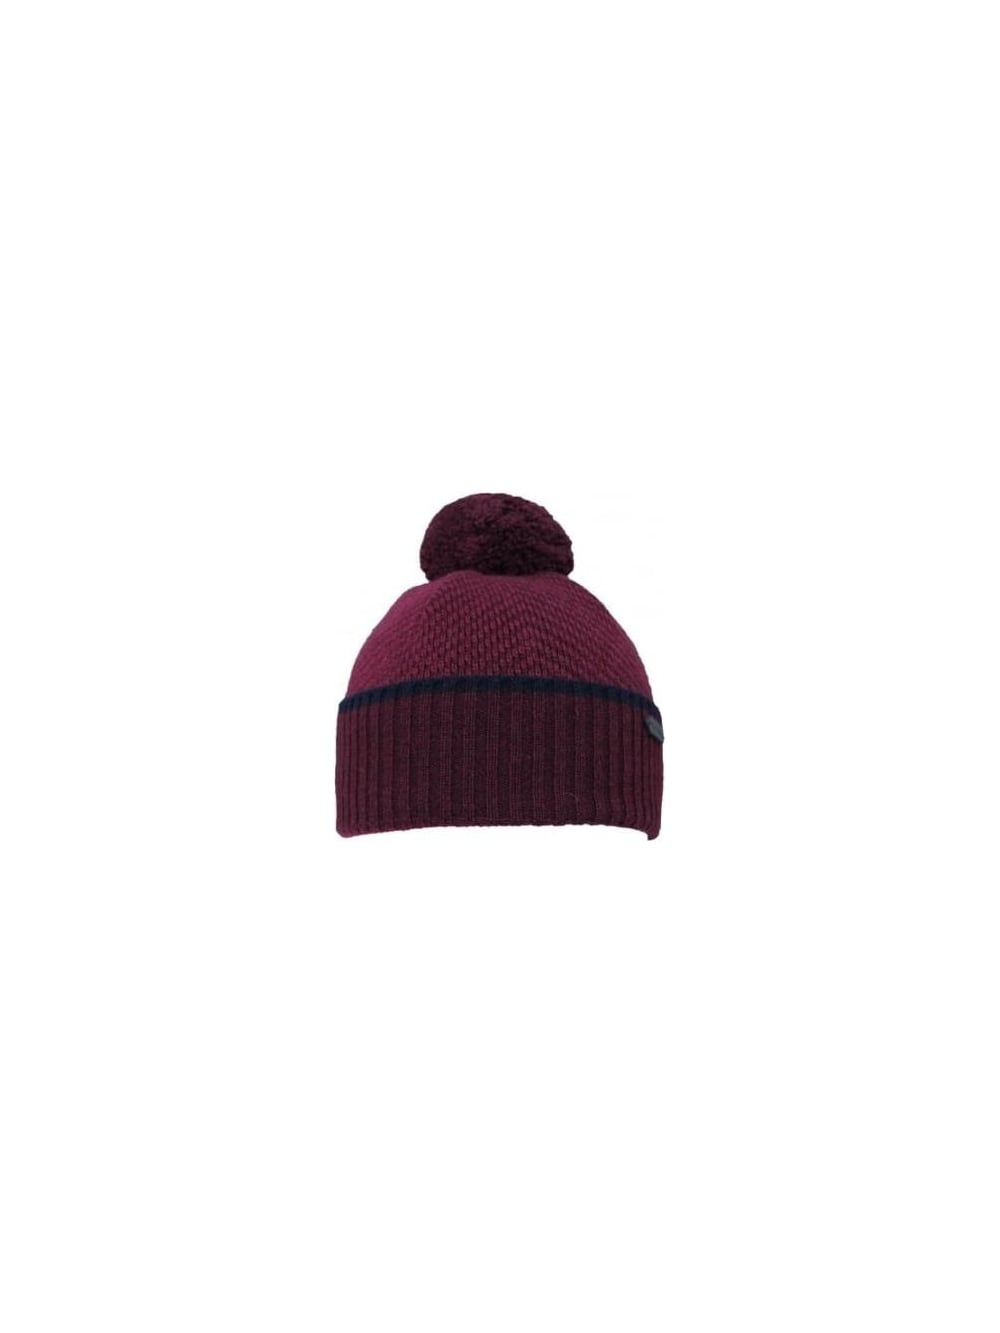 Ted Baker Archat Twill Knit Bobble Hat in Dark Red - Northern Threads 2efd05ab584